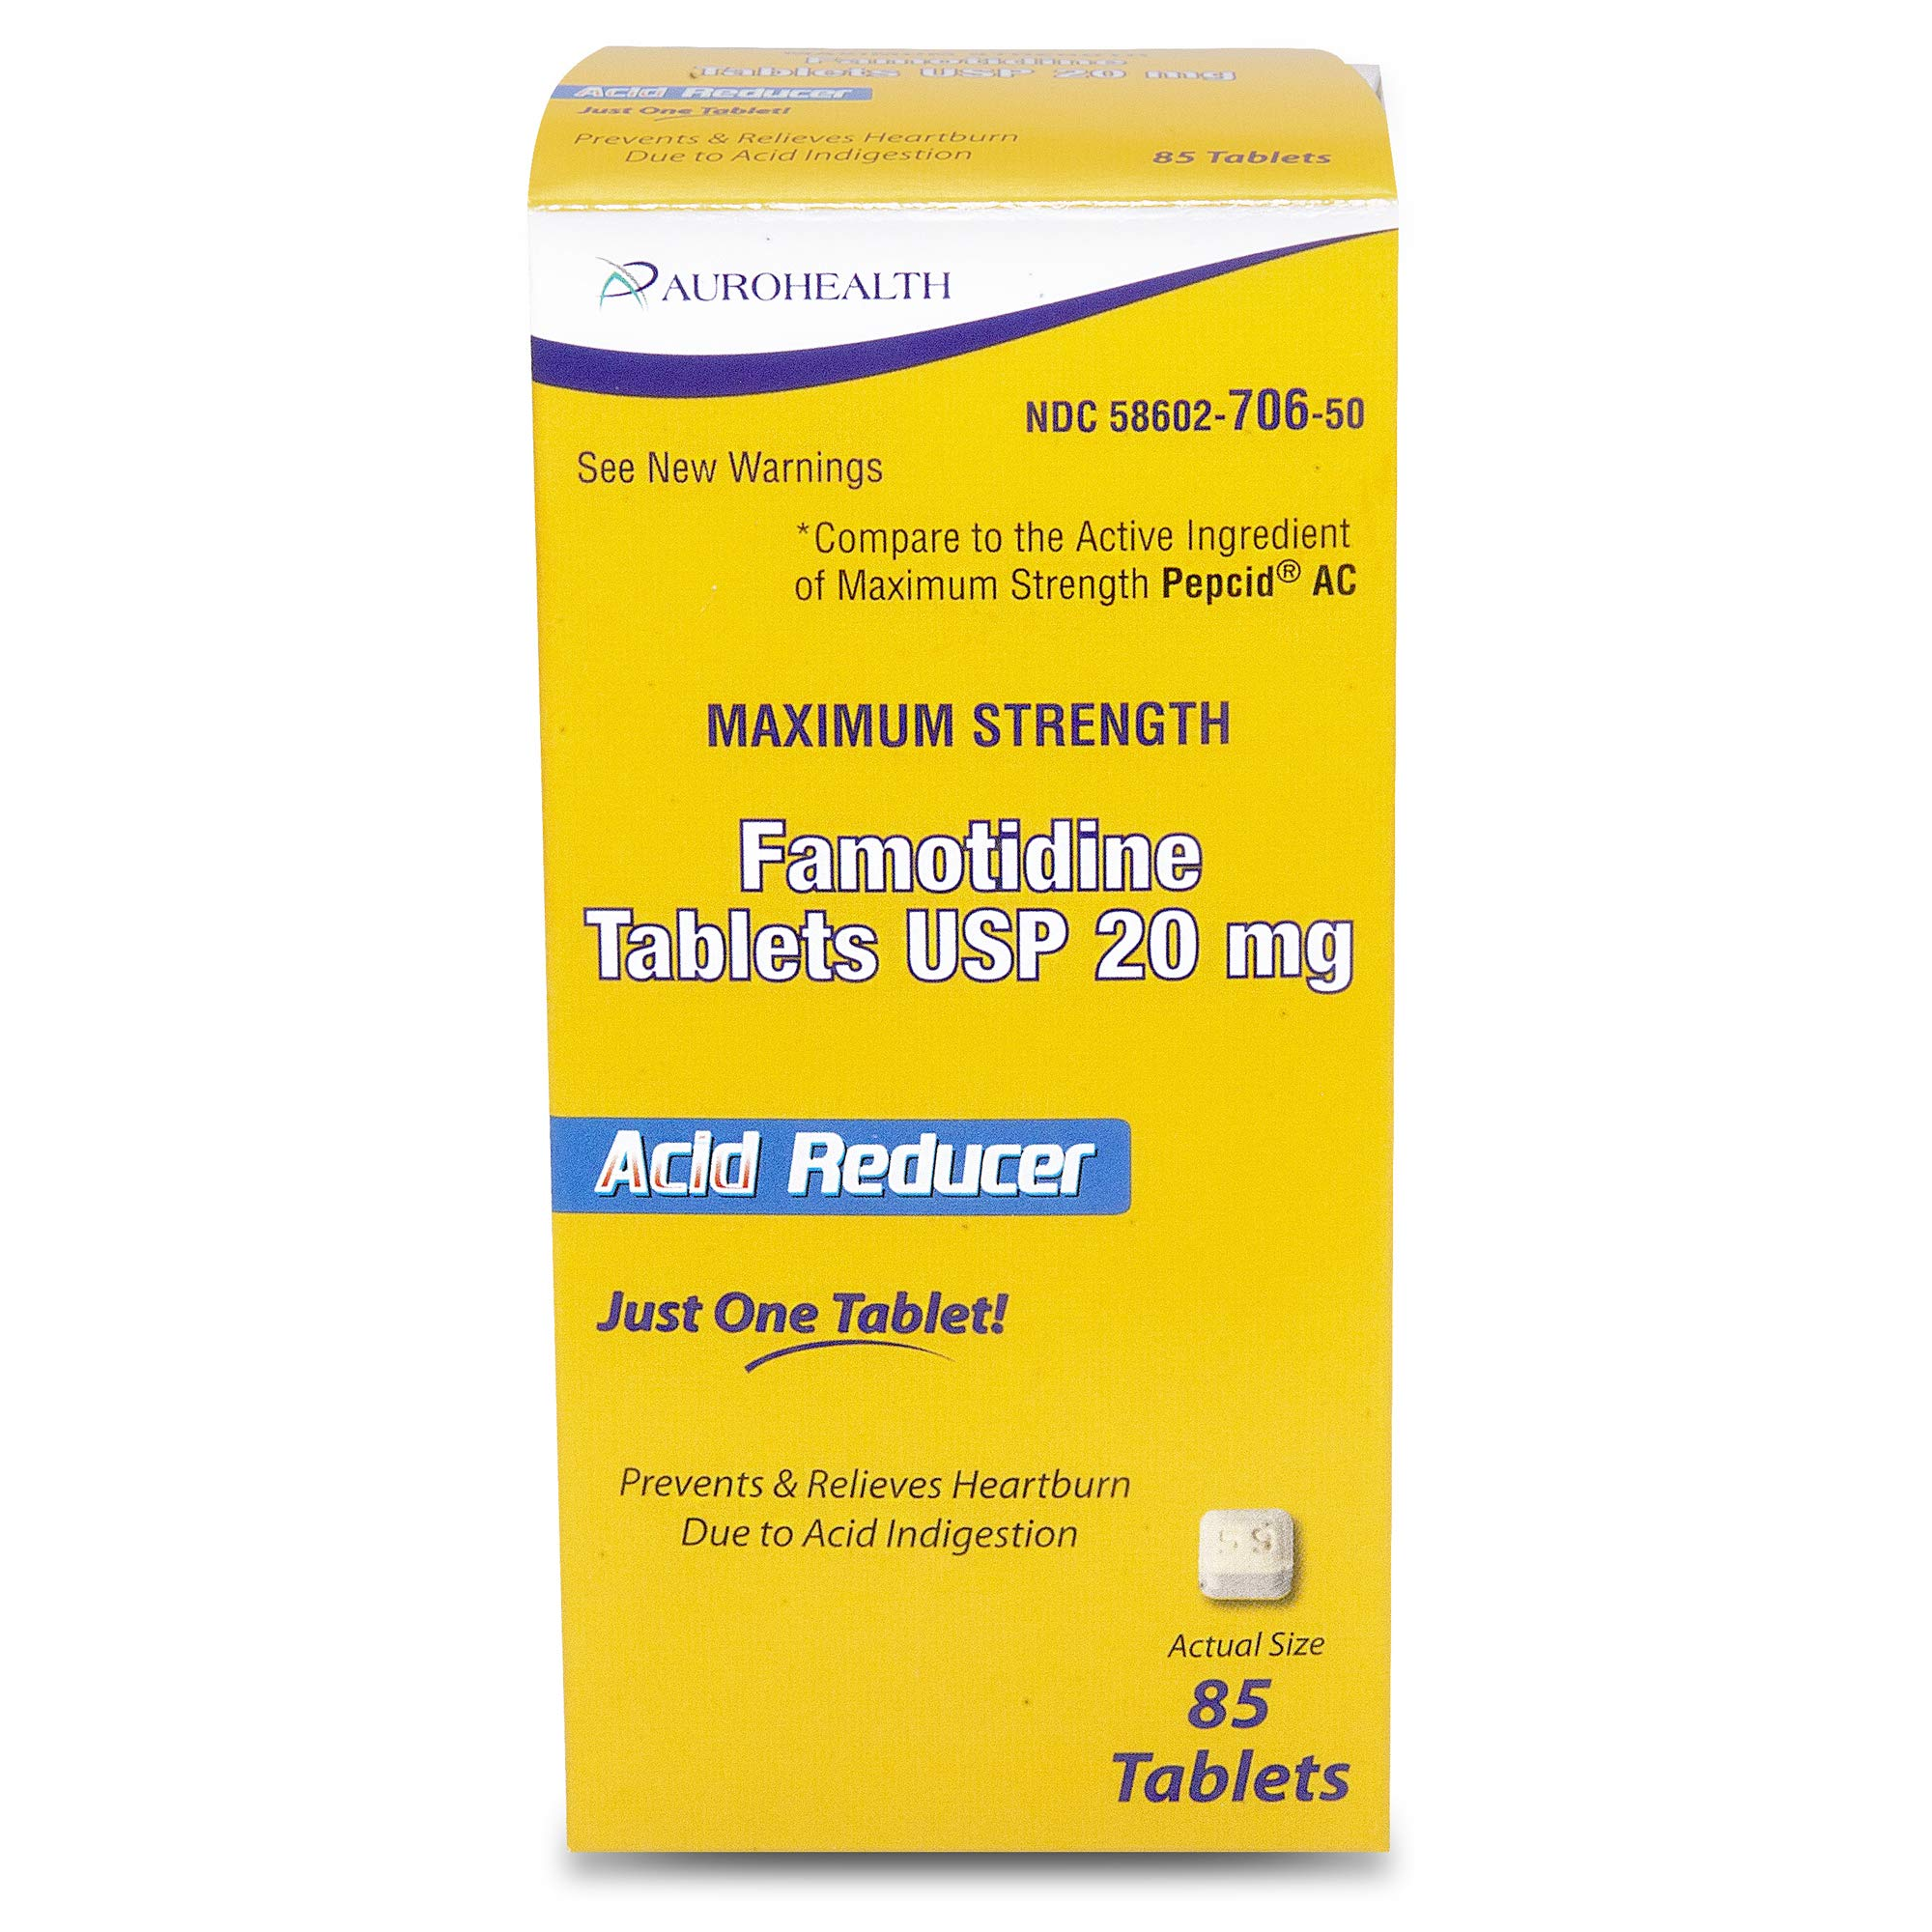 Aurohealth Maximum Strength Famotidine Tablets USP 20 mg 85 Count (1 Pack)